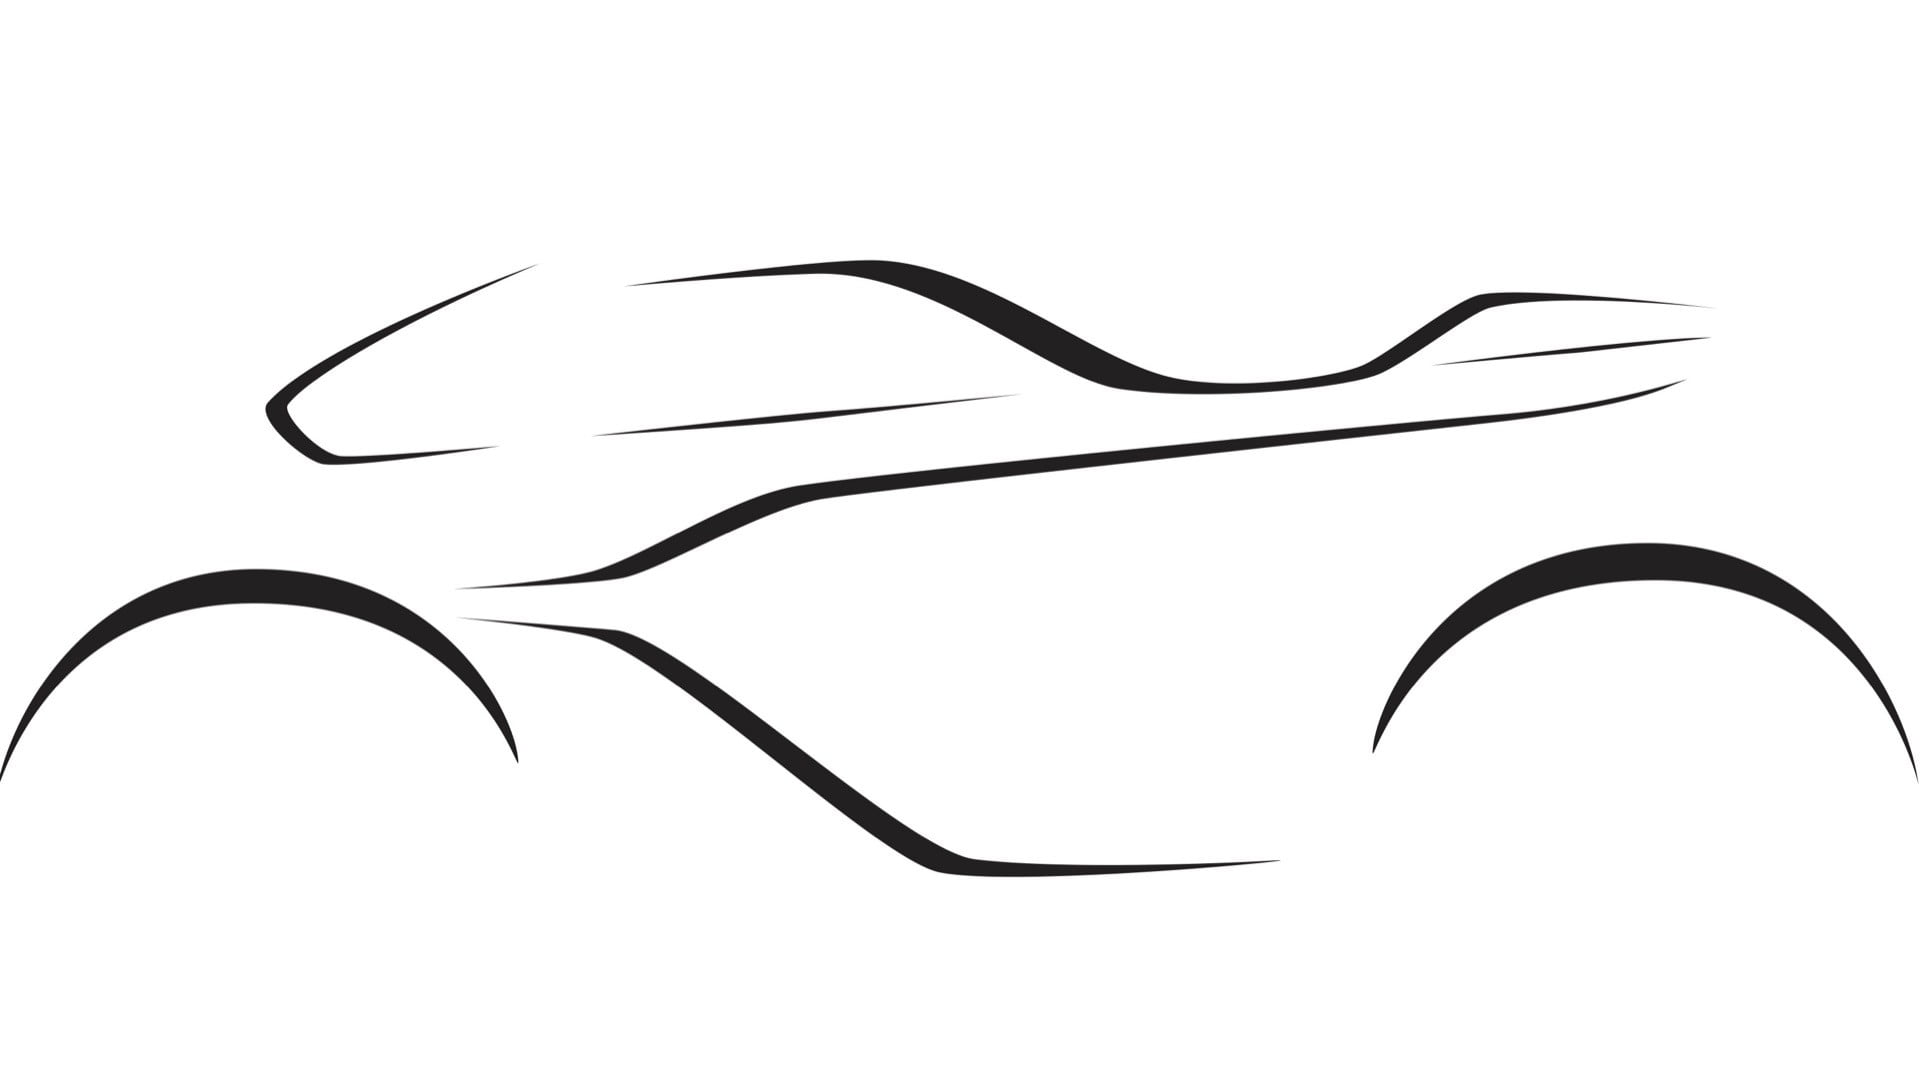 aston martin launches its first motorcycle motorycle teaser